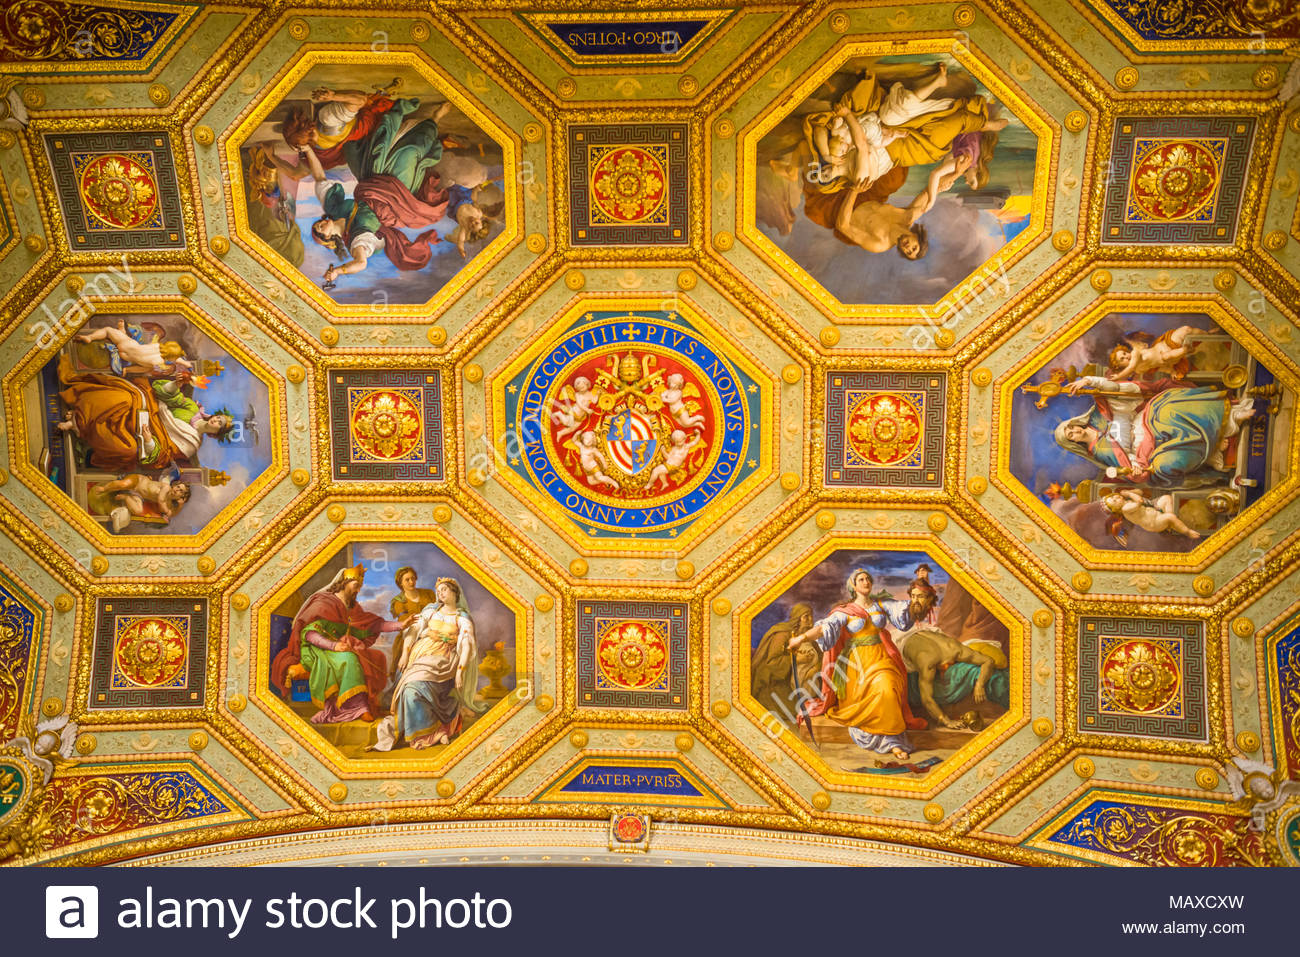 The Room of the Immaculate Conception commissioned by Pope Pius IX, Vatican Museums, Rome, Italy. - Stock Image